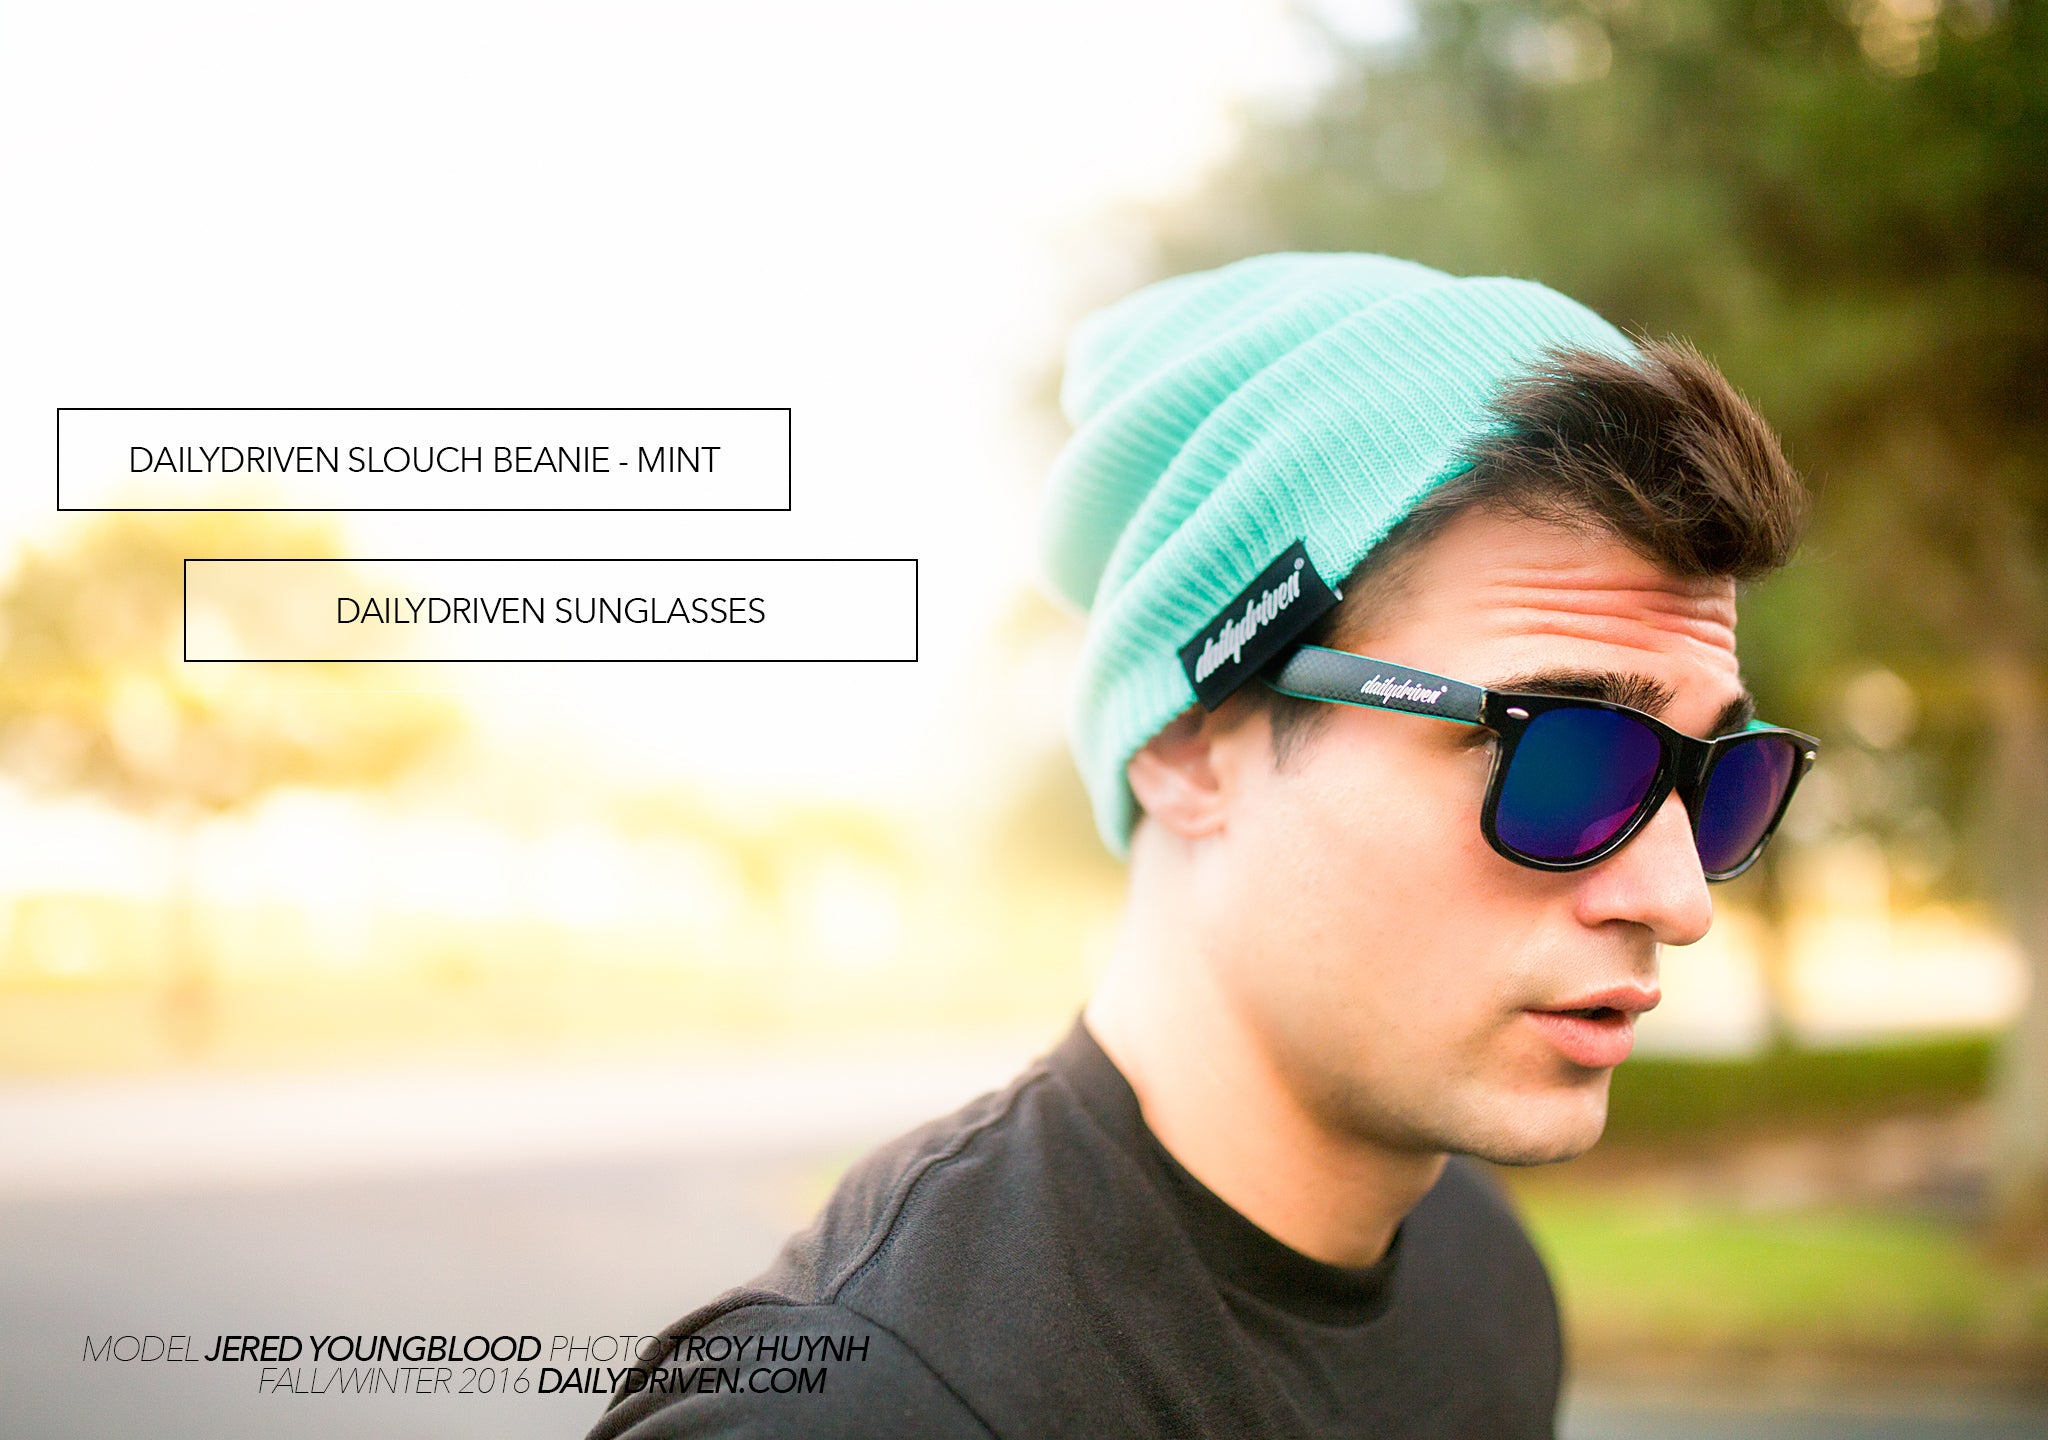 DailyDriven Slouch Beanie Sunglasses